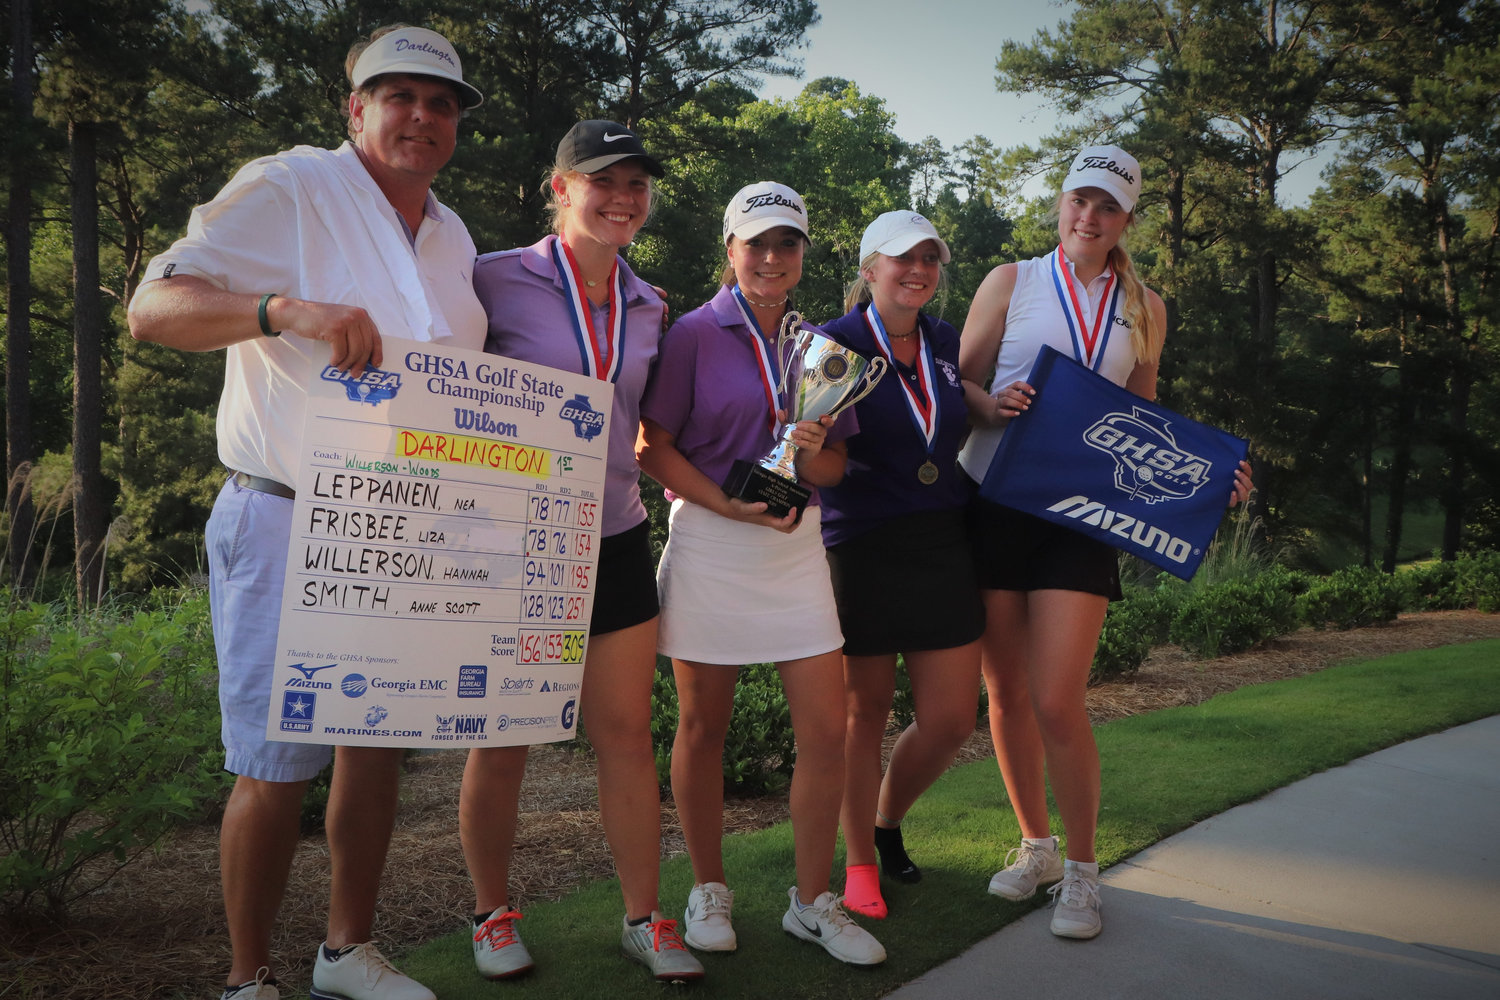 The Darlington School girls golf team won the Class A-Private state championship for the second straight year, beating out Athens Academy by five strokes Tuesday at Green Island Country Club in Columbus. Pictured, from left, are coach Jared Willerson, Hannah Willerson, Liza Frisbee, Anne Scott Smith and Nea Leppanen. Frisbee, a junior from Cartersville, finished third in the tournament with a two-day score of 154.